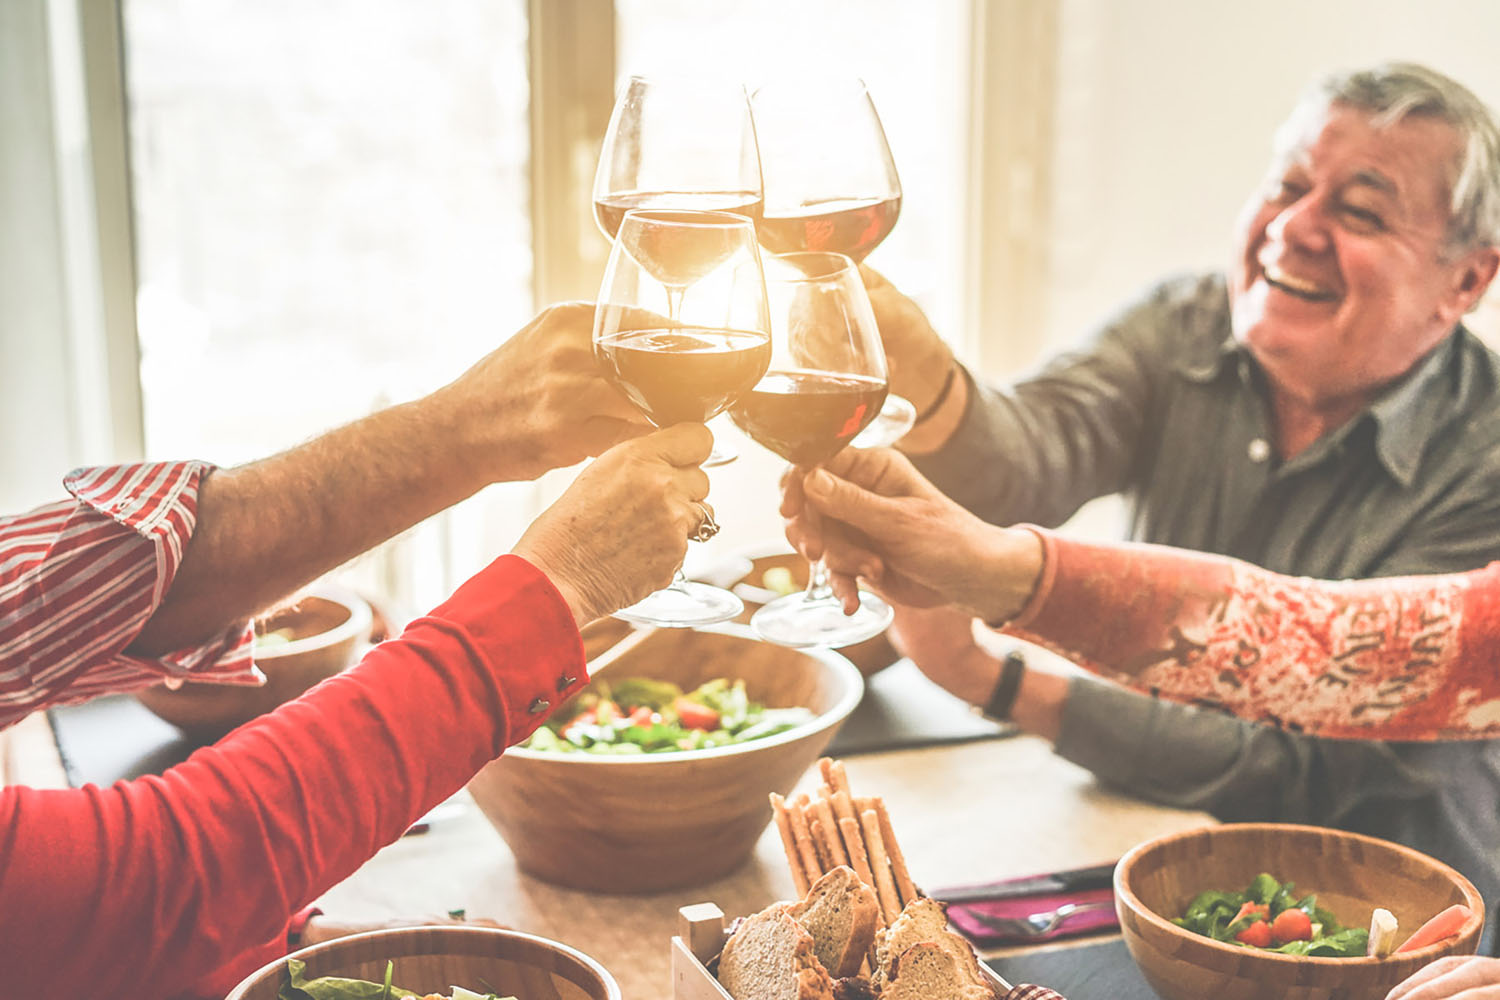 Friends toast with wine over dinner